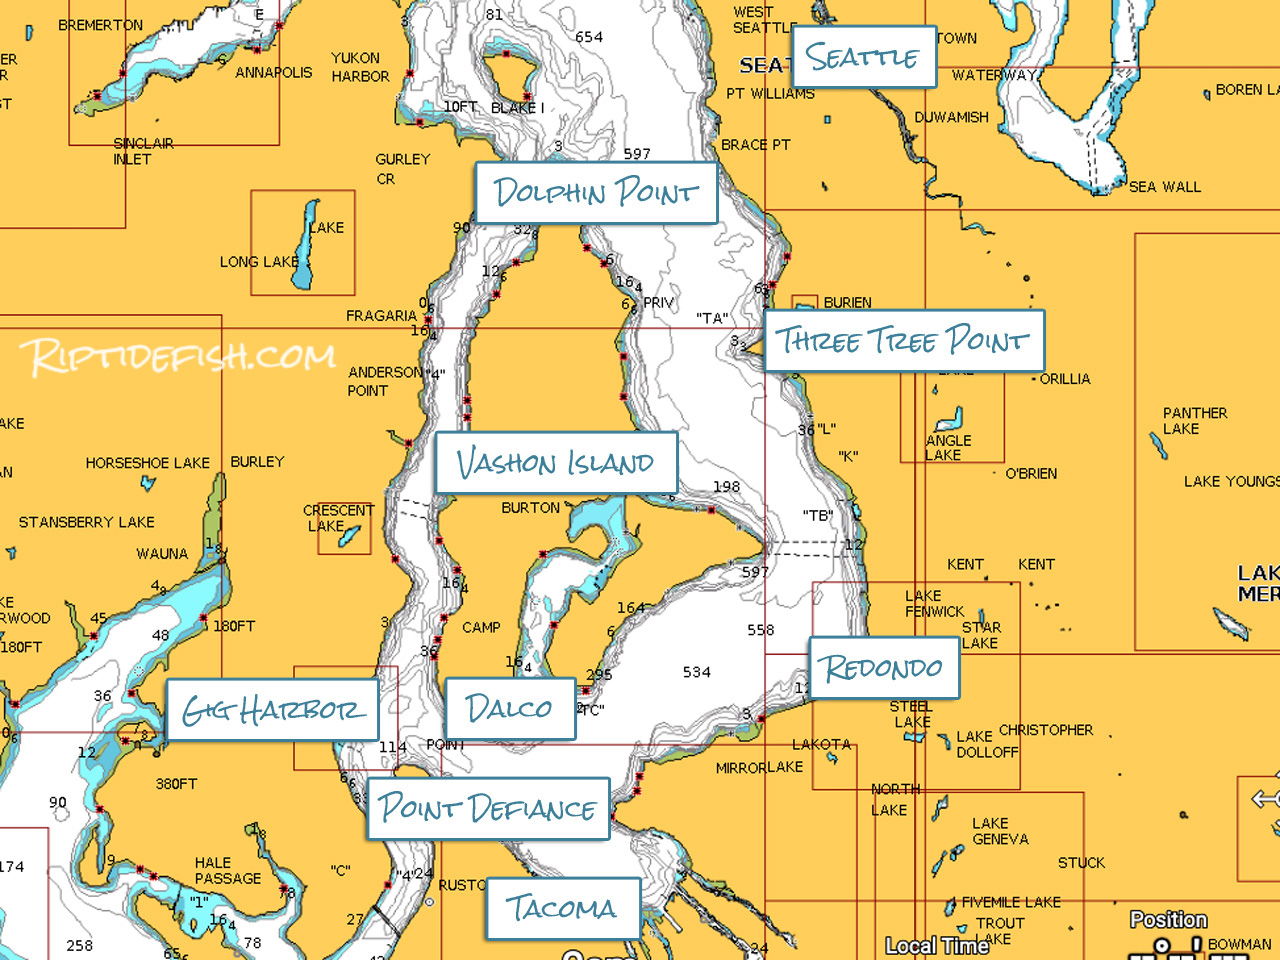 South Puget Sound Chinook Salmon Fishing Hot Spots